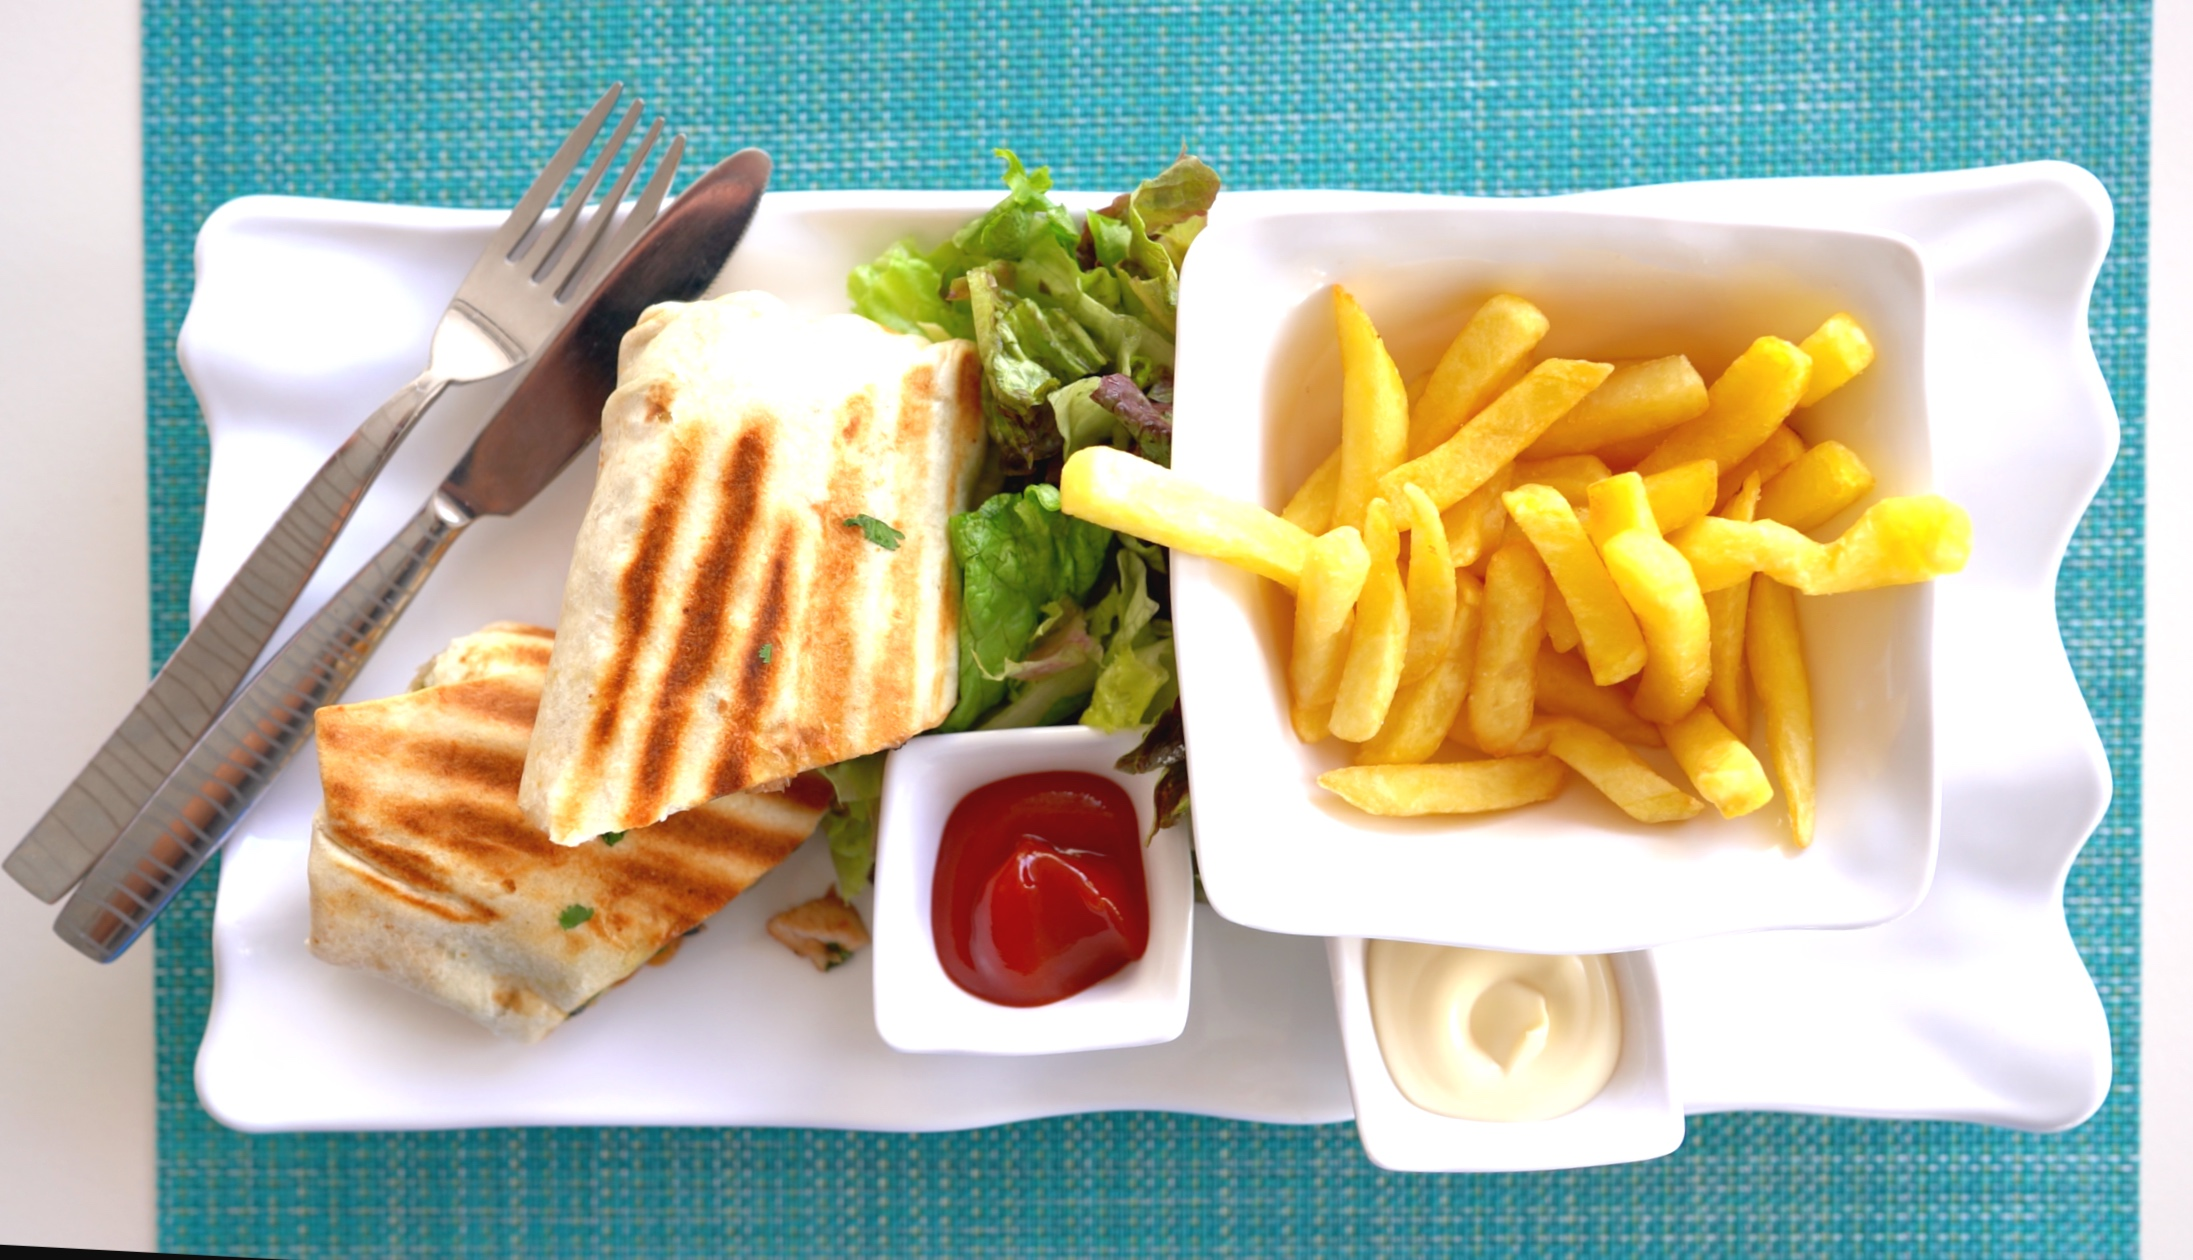 Wrap and fries.